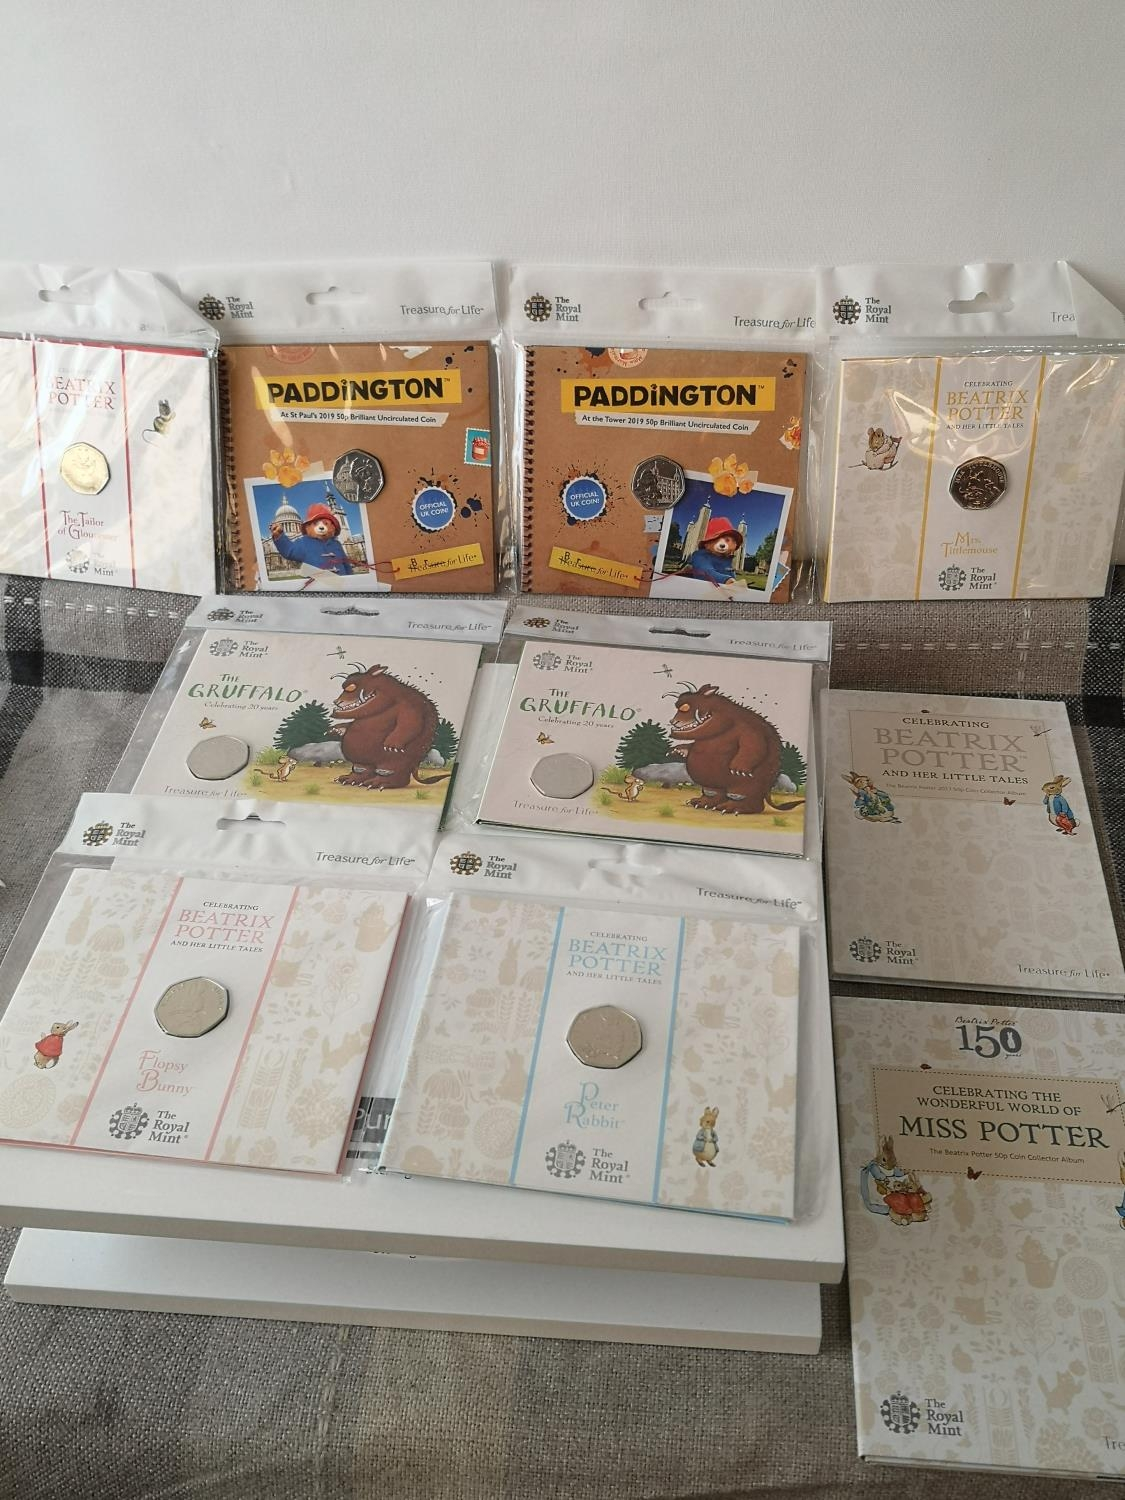 A COLLECTION OF 'THE ROYAL MINT' TREASURY FOR LIFE 50 PENCE COINS. TO INCLUDE TWO SEALED